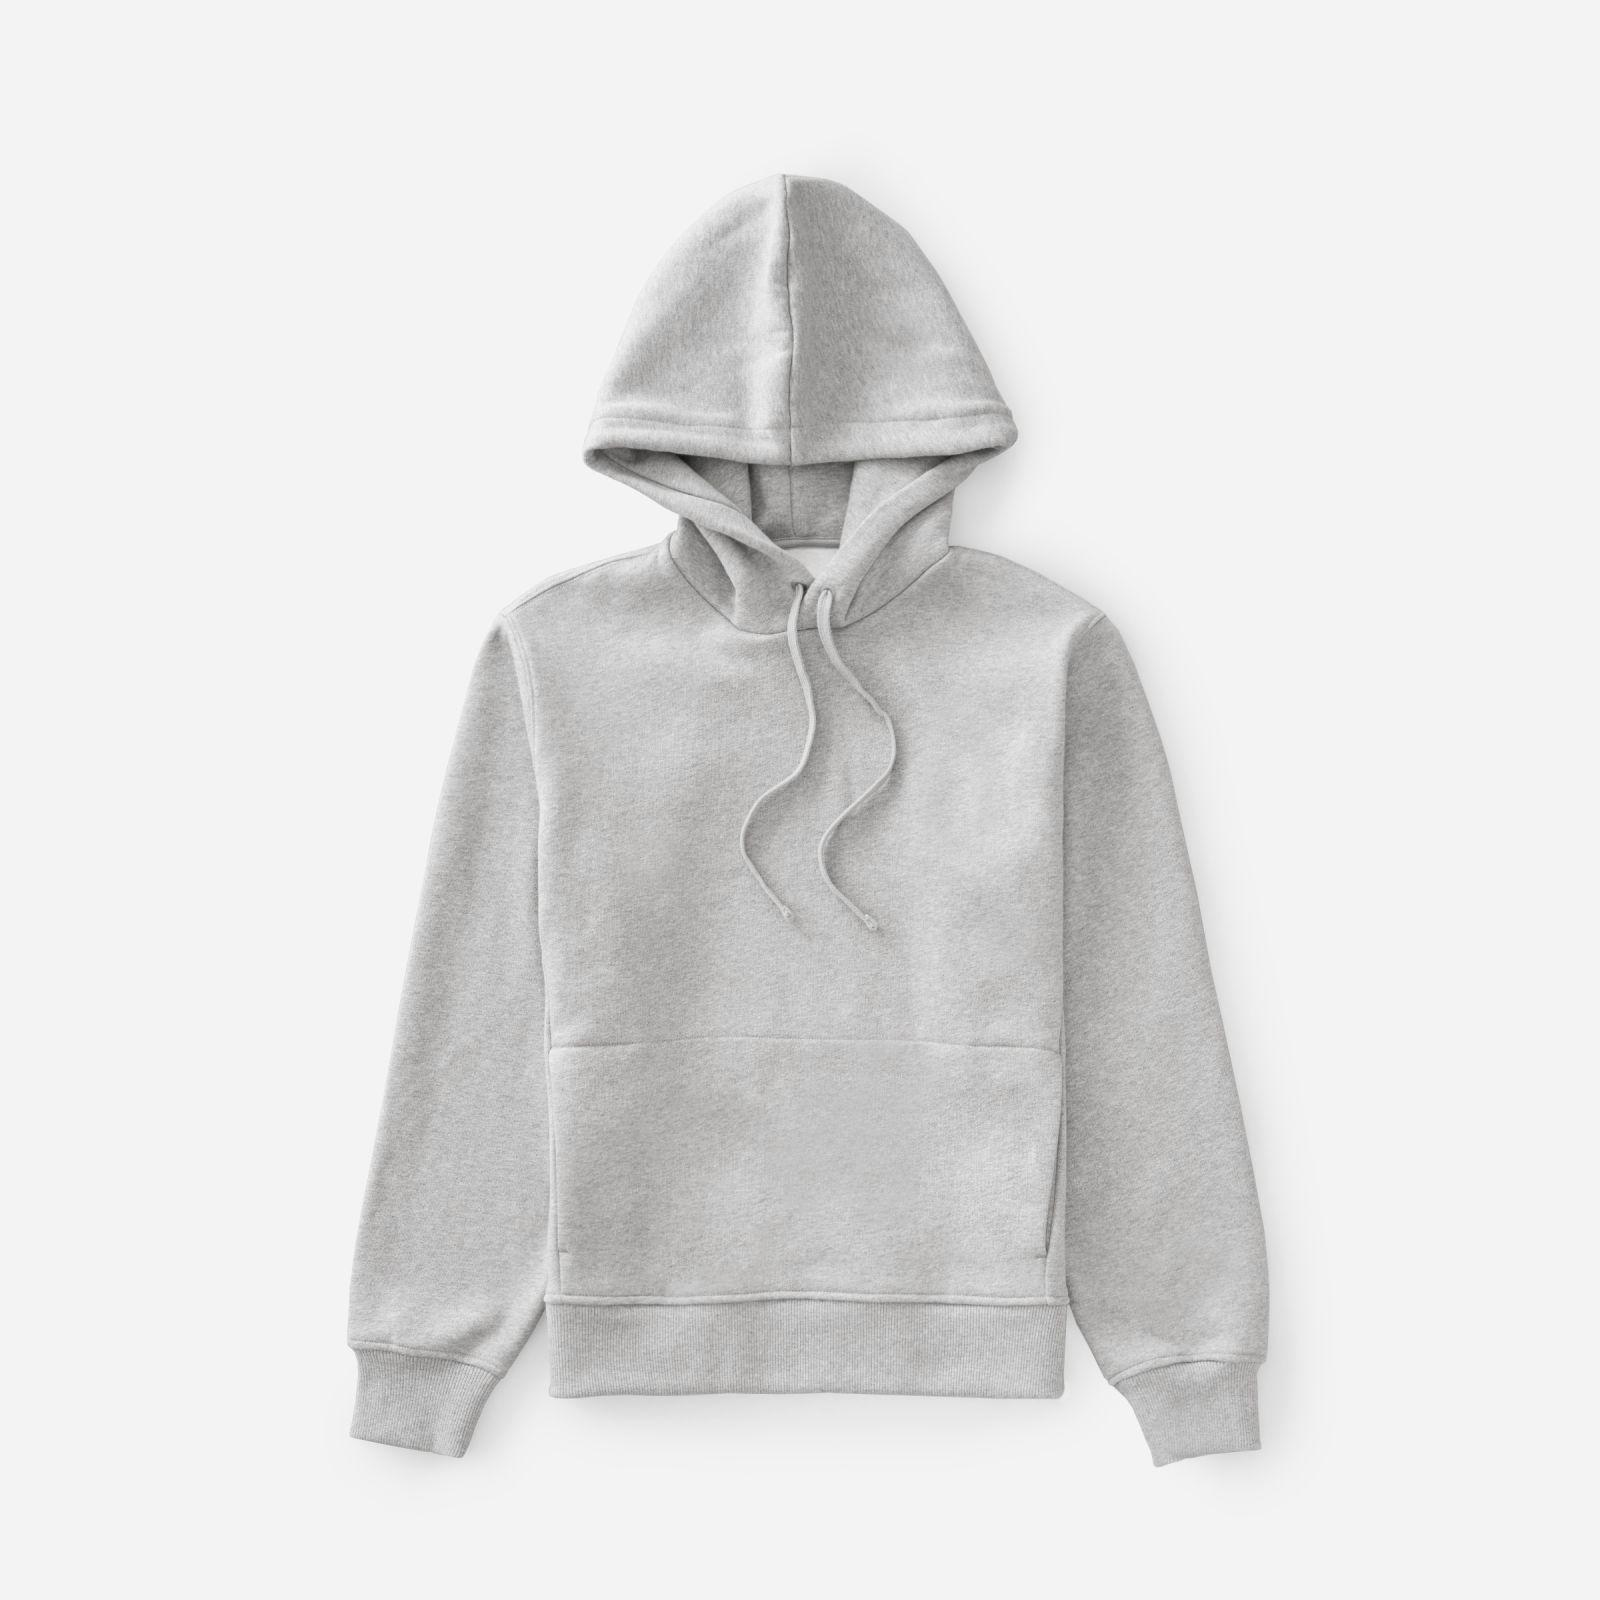 d119194a6c44 Everlane - Gray The 365 Fleece Hoodie for Men - Lyst. View fullscreen